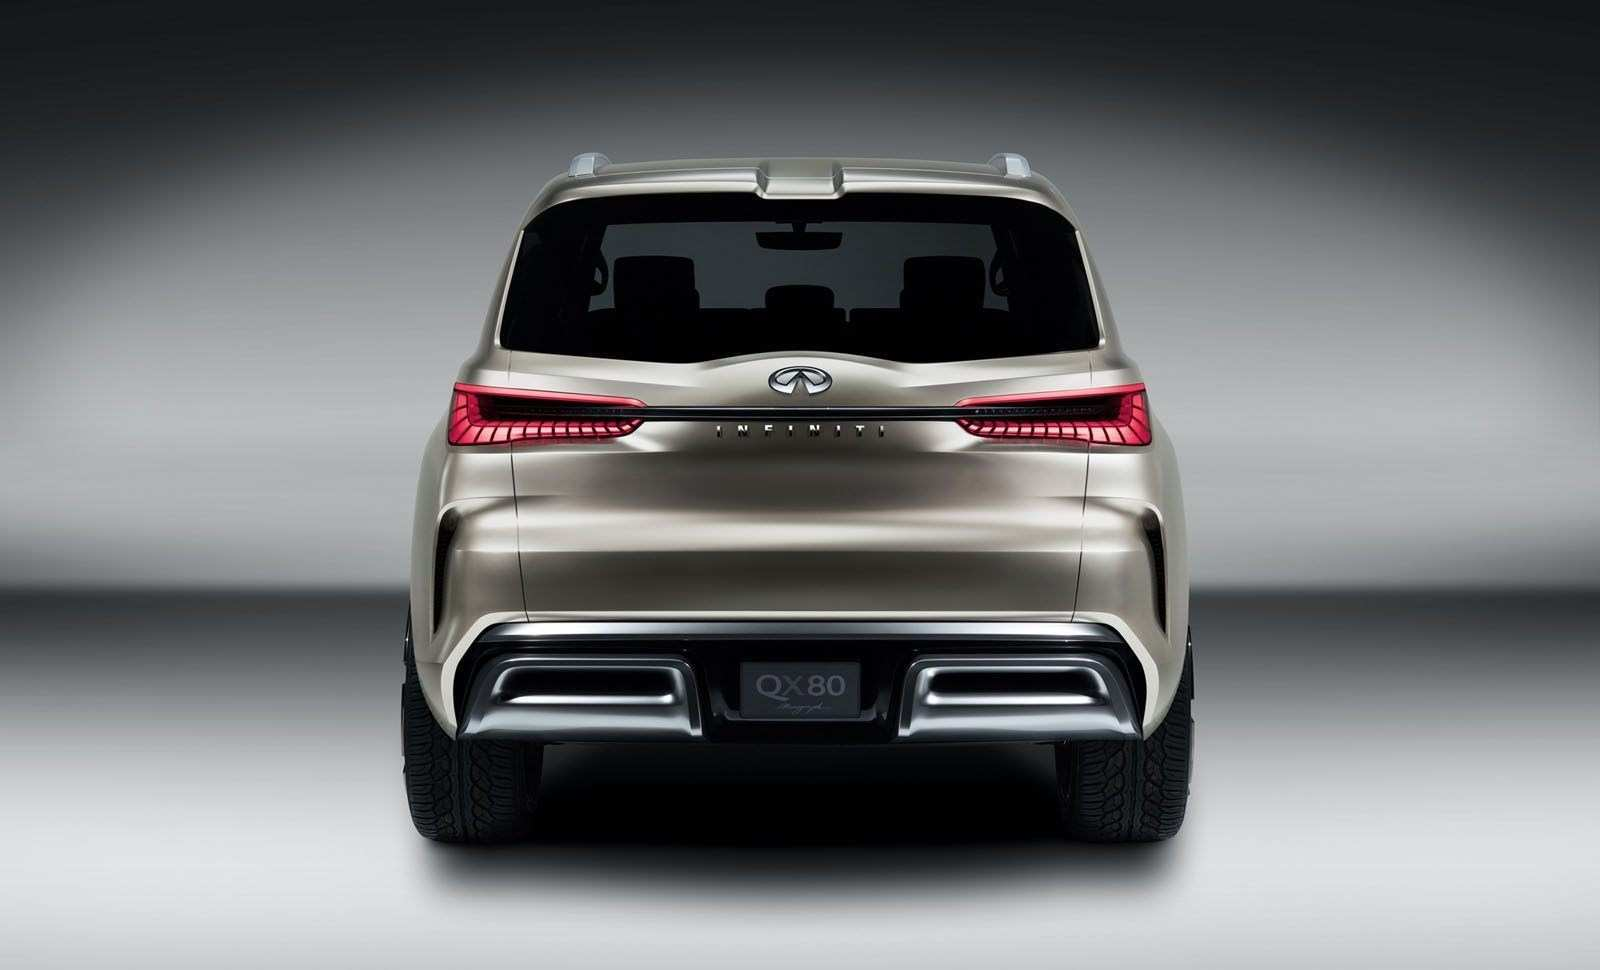 68 The 2020 Infiniti Qx80 New Concept Exterior by 2020 Infiniti Qx80 New Concept